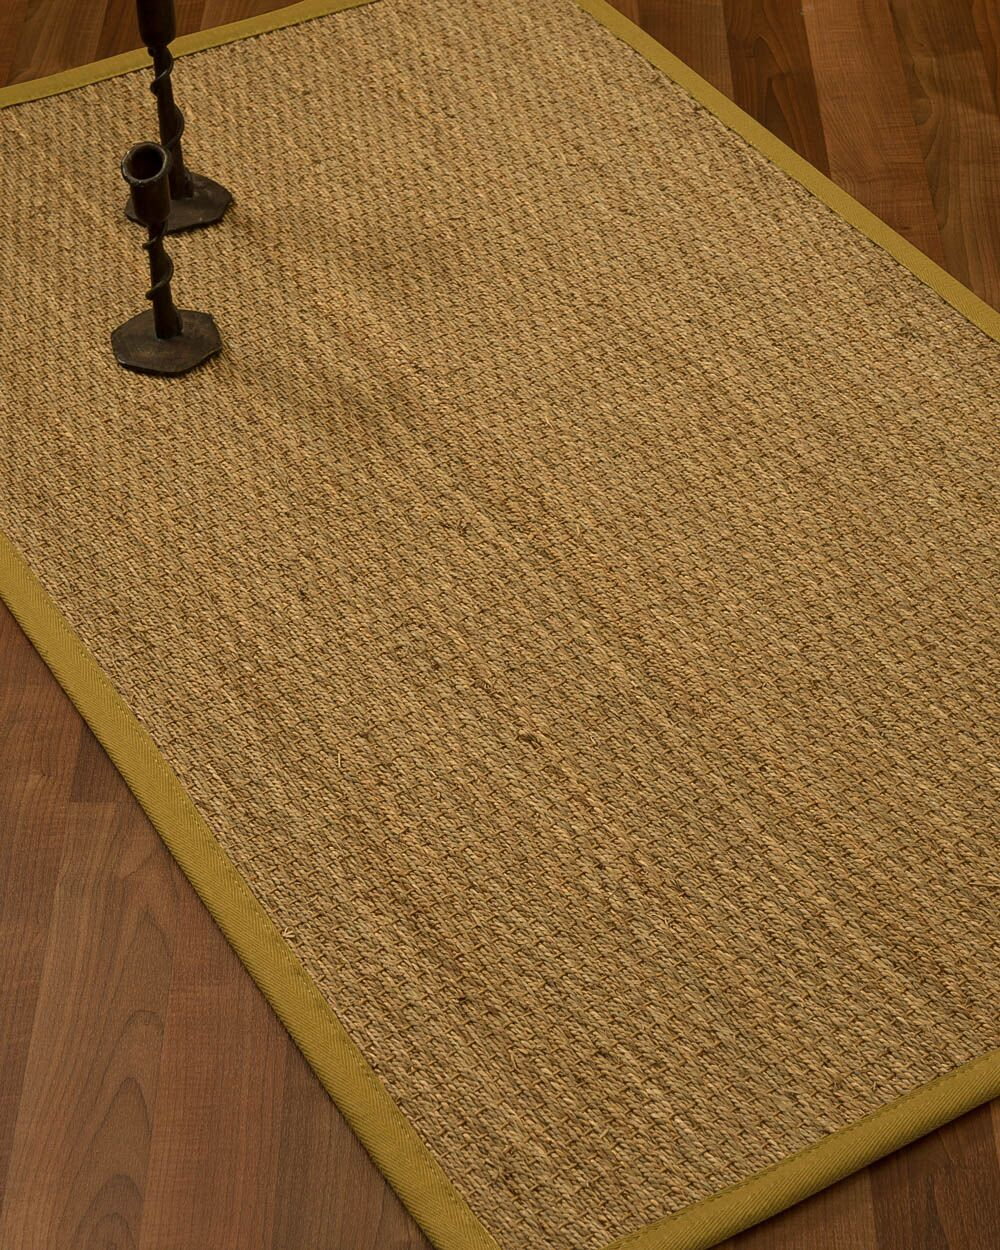 Vanmatre Border Hand-Woven Beige/Tan Area Rug Rug Size: Rectangle 4' x 6', Rug Pad Included: Yes